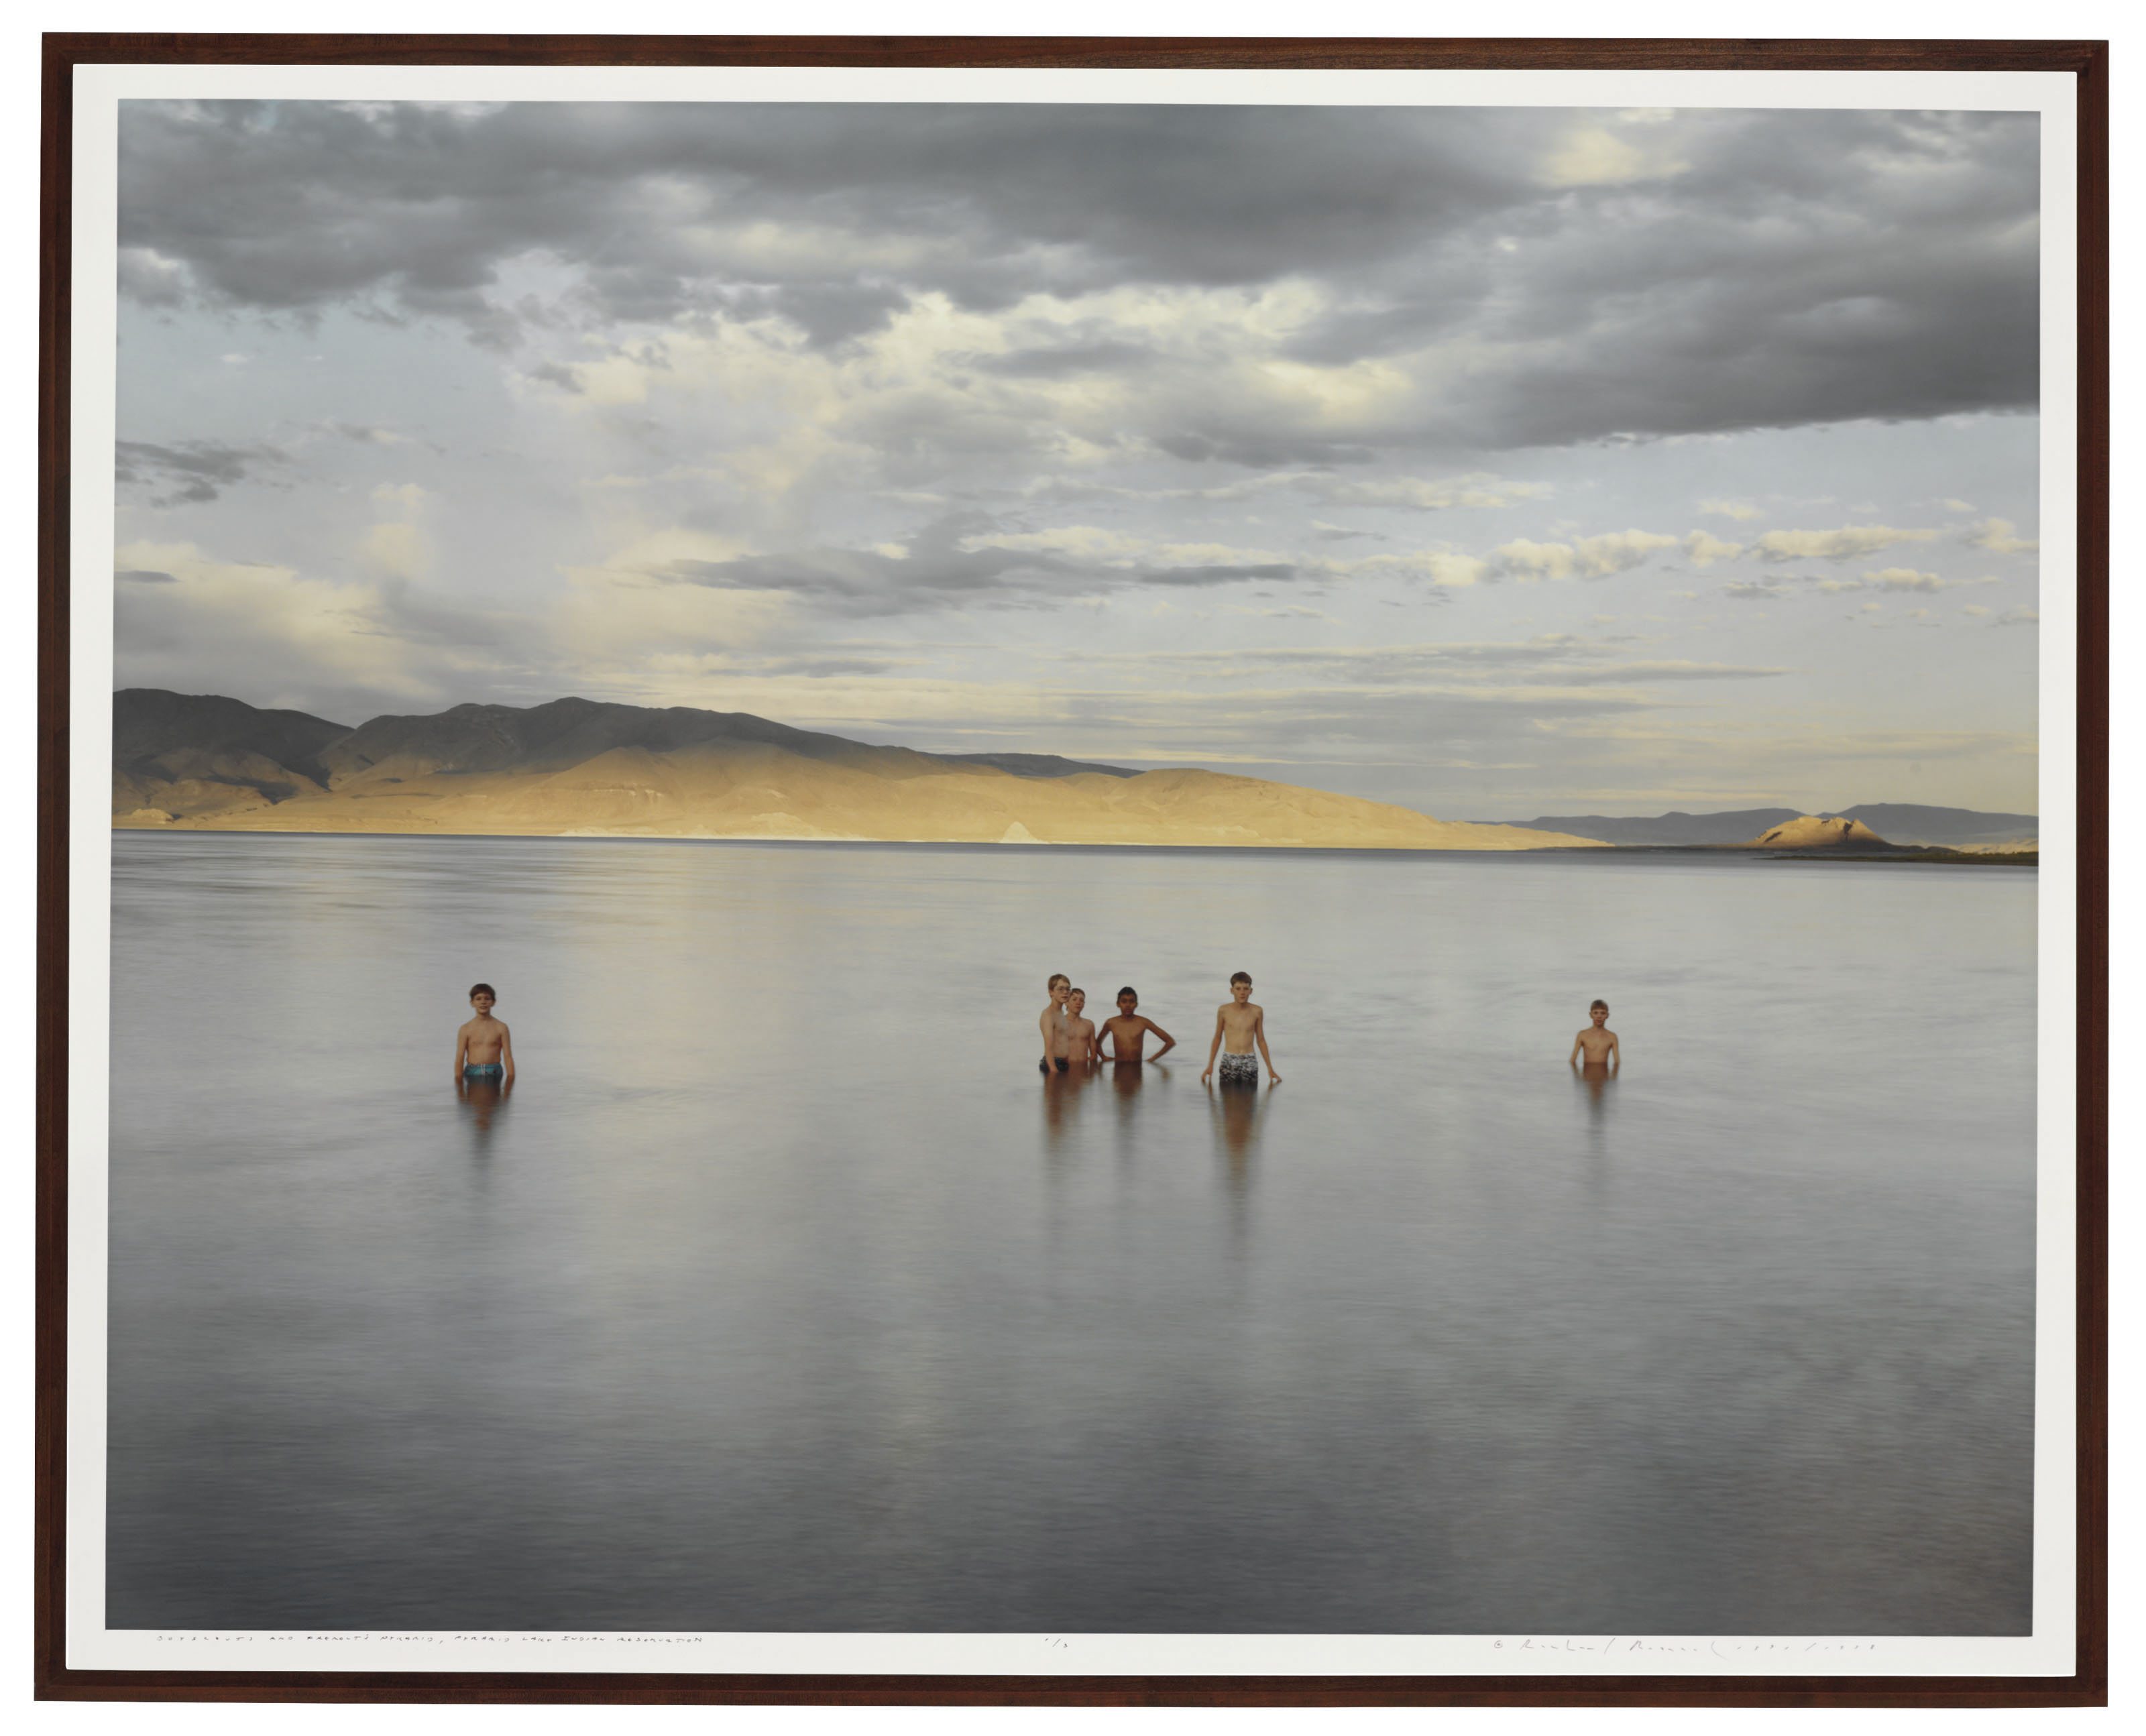 Boy Scouts and Fremont's Pyramid, Pyramid Lake Indian Reservation, 1991